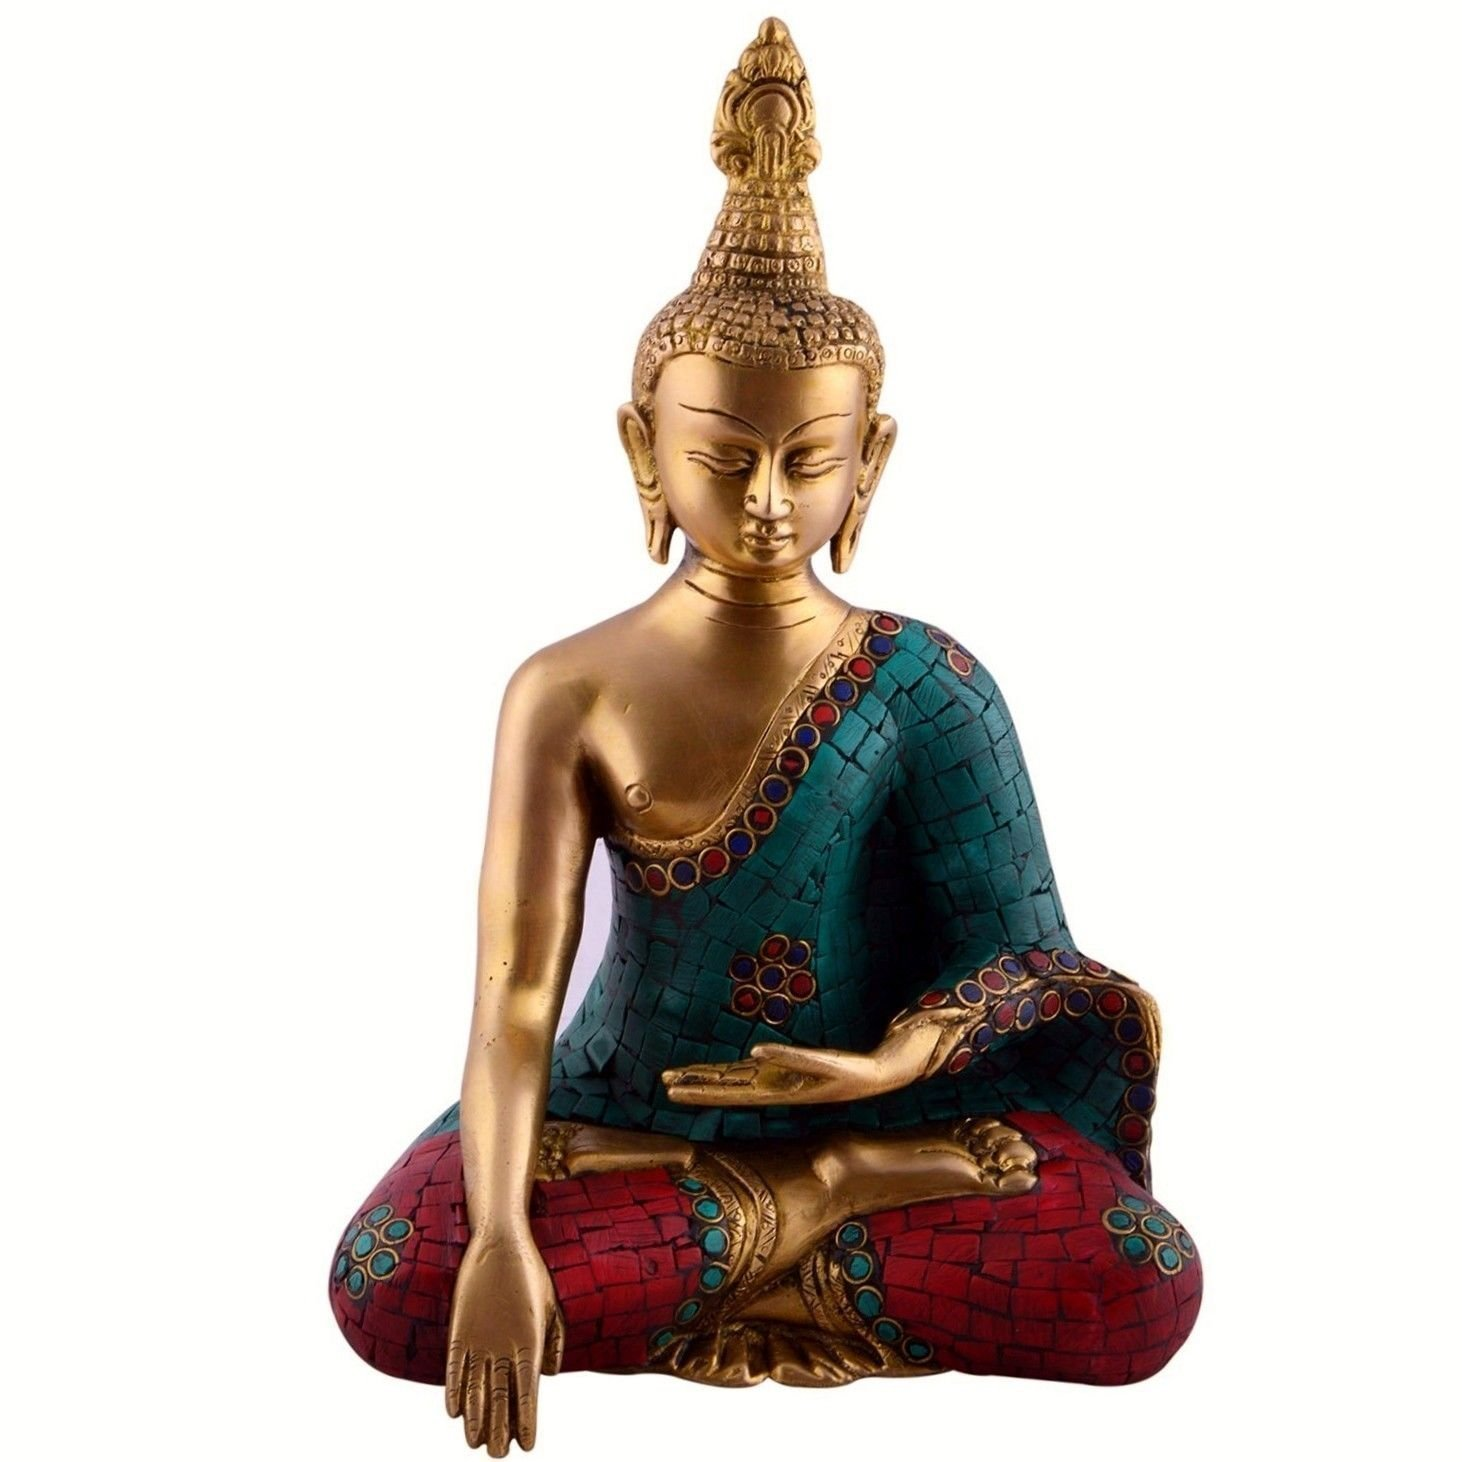 Aone India 10'' Thai Buddha Meditating Peace Harmony Statue + Cash Envelope (Pack Of 10) by AONE INDIA